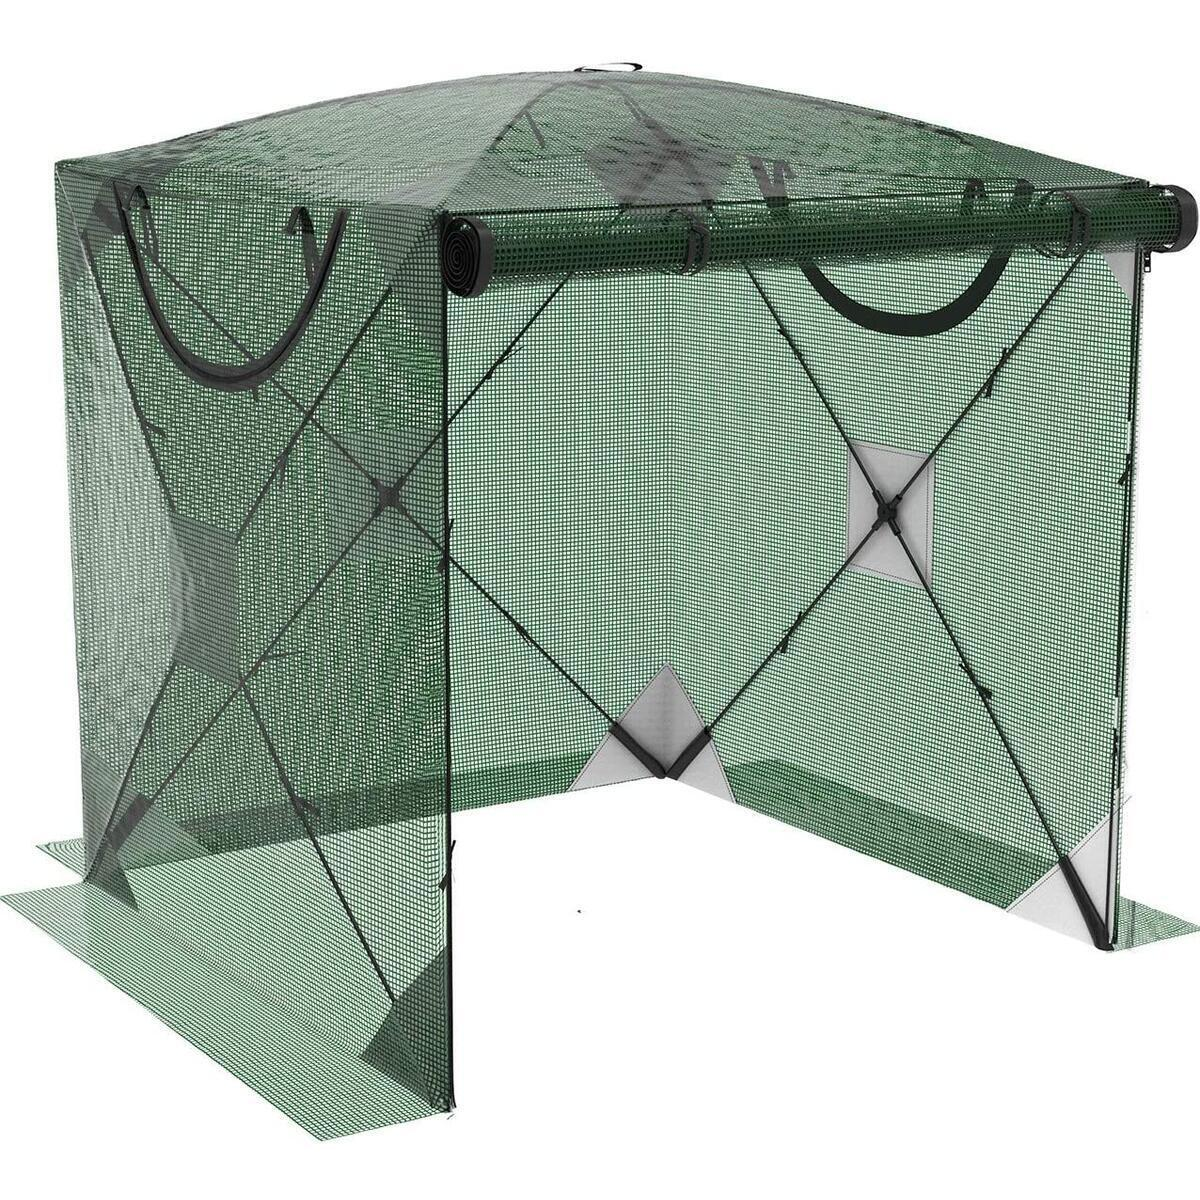 Kradl Portable Greenhouse Kit   Outdoor, Instant Pop Up Canopy for Plants   Waterproof Plant Cover   Garden Shed Plastic Grow Tent 69 x 69 x 81 Inches